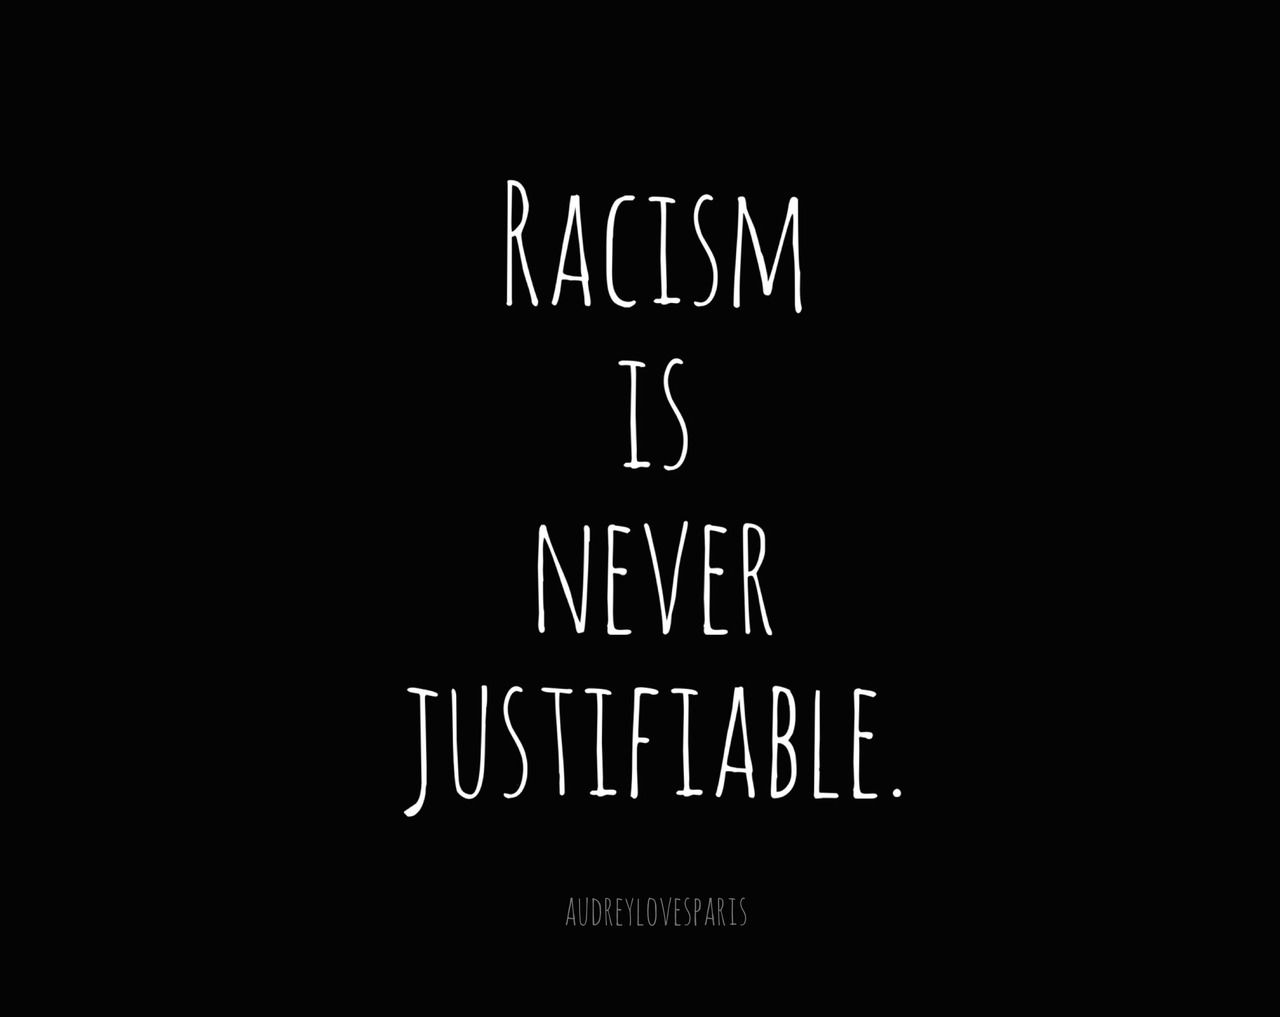 Quotes On Racism Amusing Race Baiters Are The Epitome Of Evil In Today's American Society